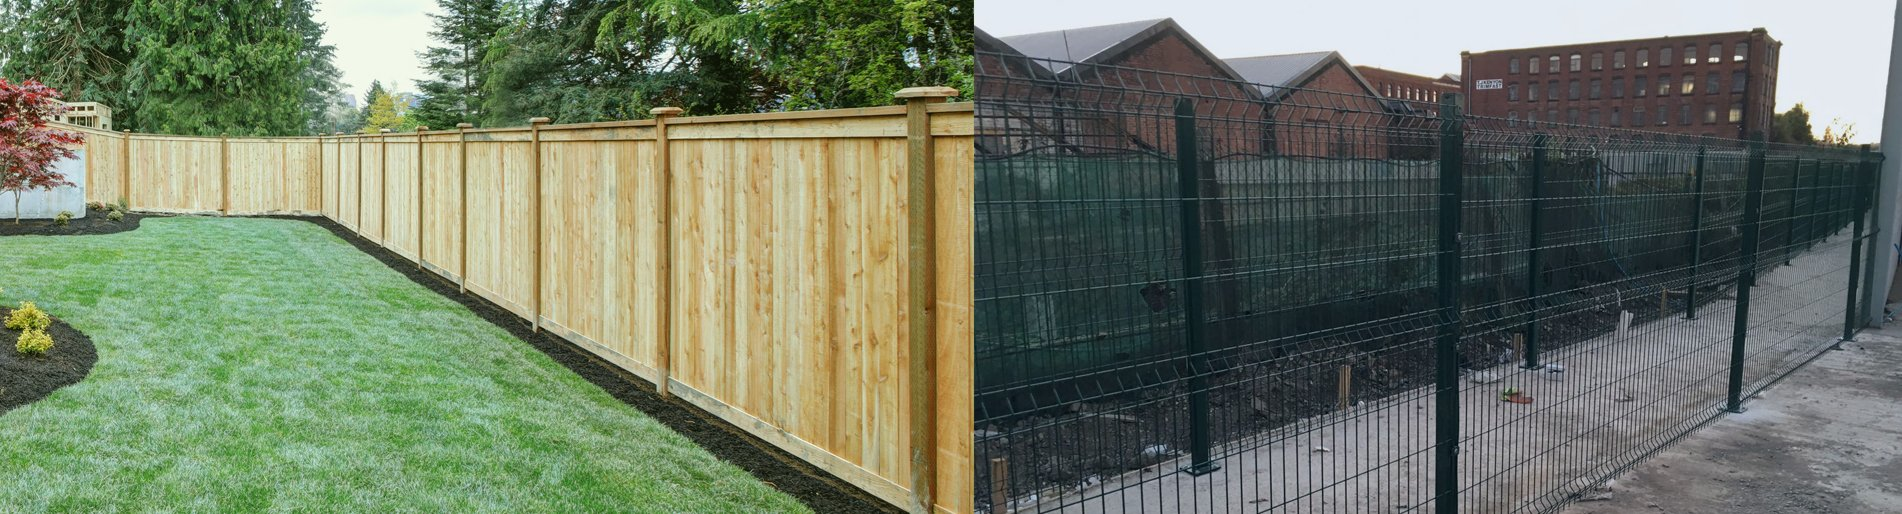 fencing company cheshire background image